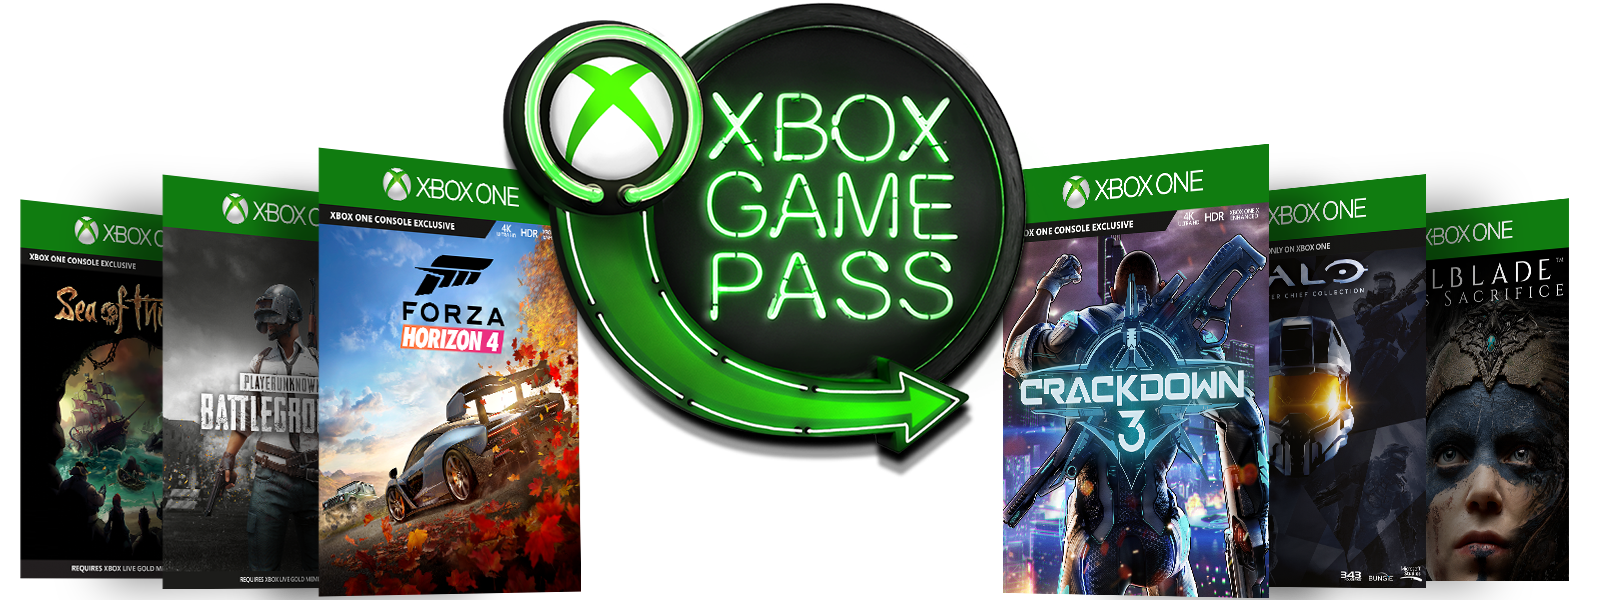 Box shots for Sea of Thieves, PLAYERUNKNOWNS Battleground, Forza Horizon 4, Crackdown 3, Halo The Master Chief Collection, and Hellblade Senuas Sacrifice surrounding the Xbox Game Pass Neon Sign logo